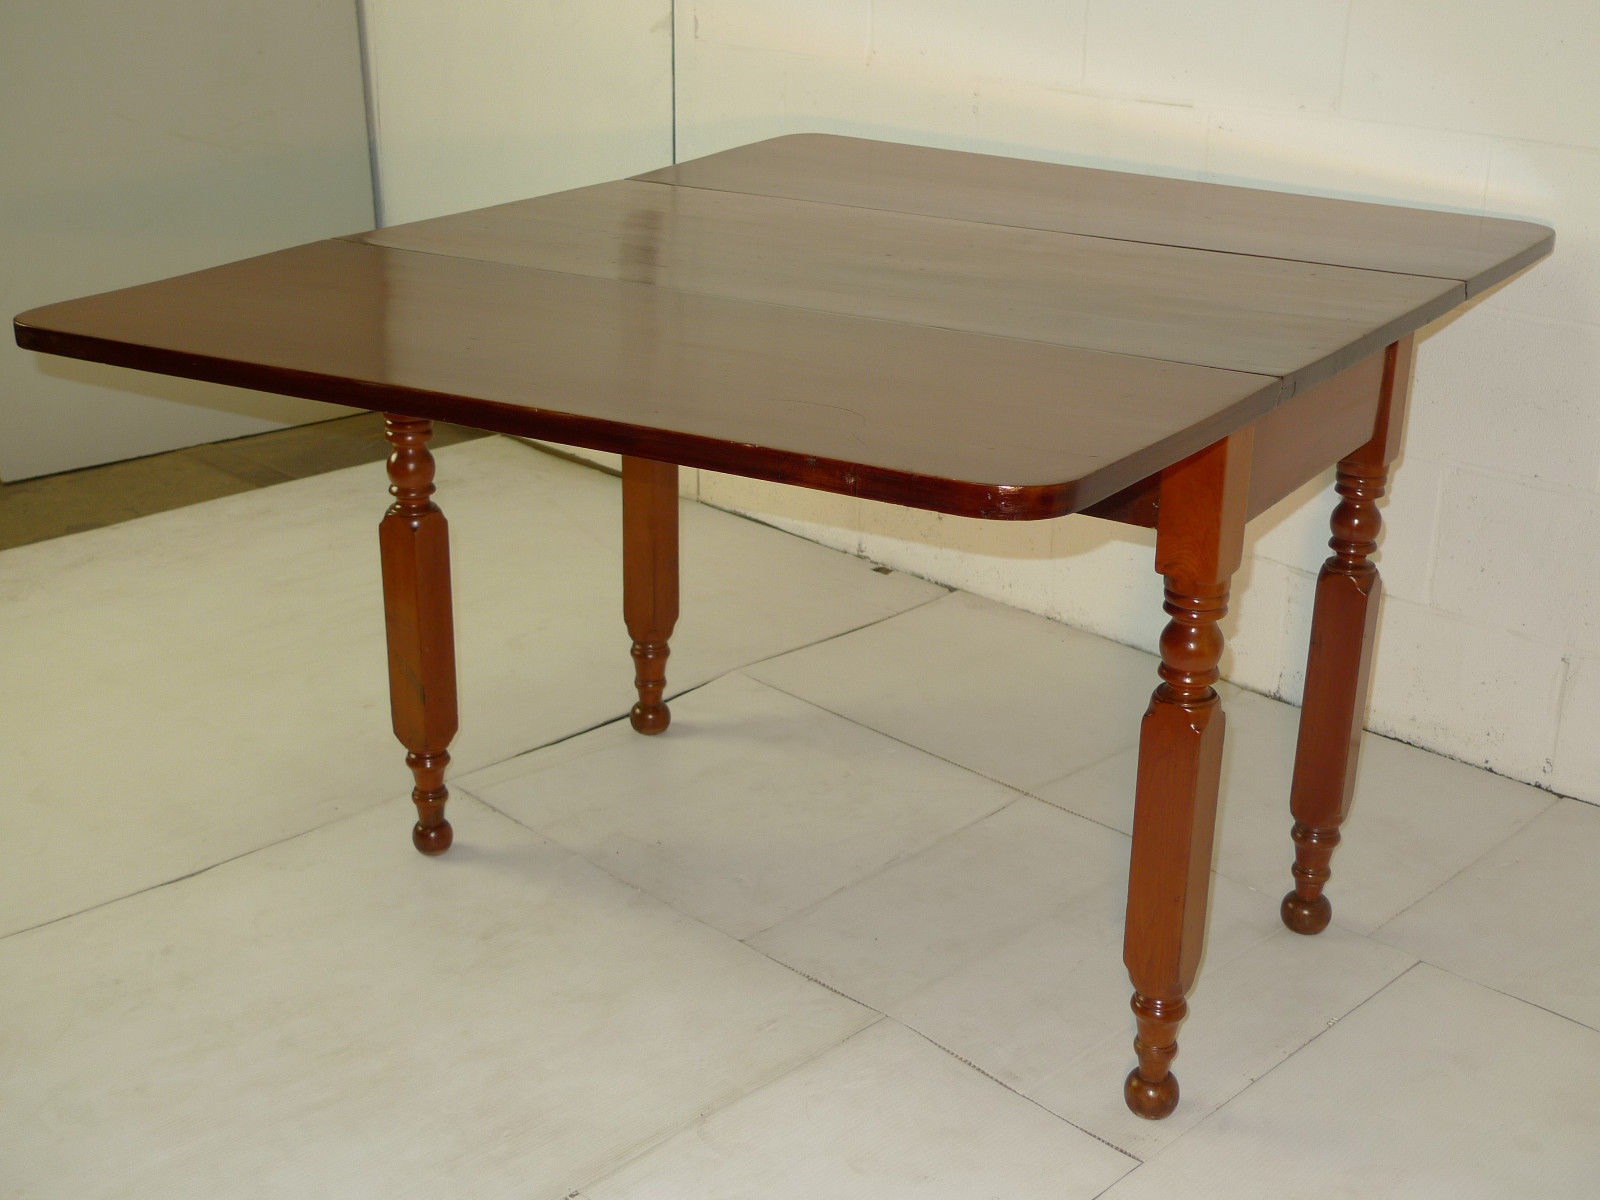 Victorian Period - Cherry Drop Leaf Table